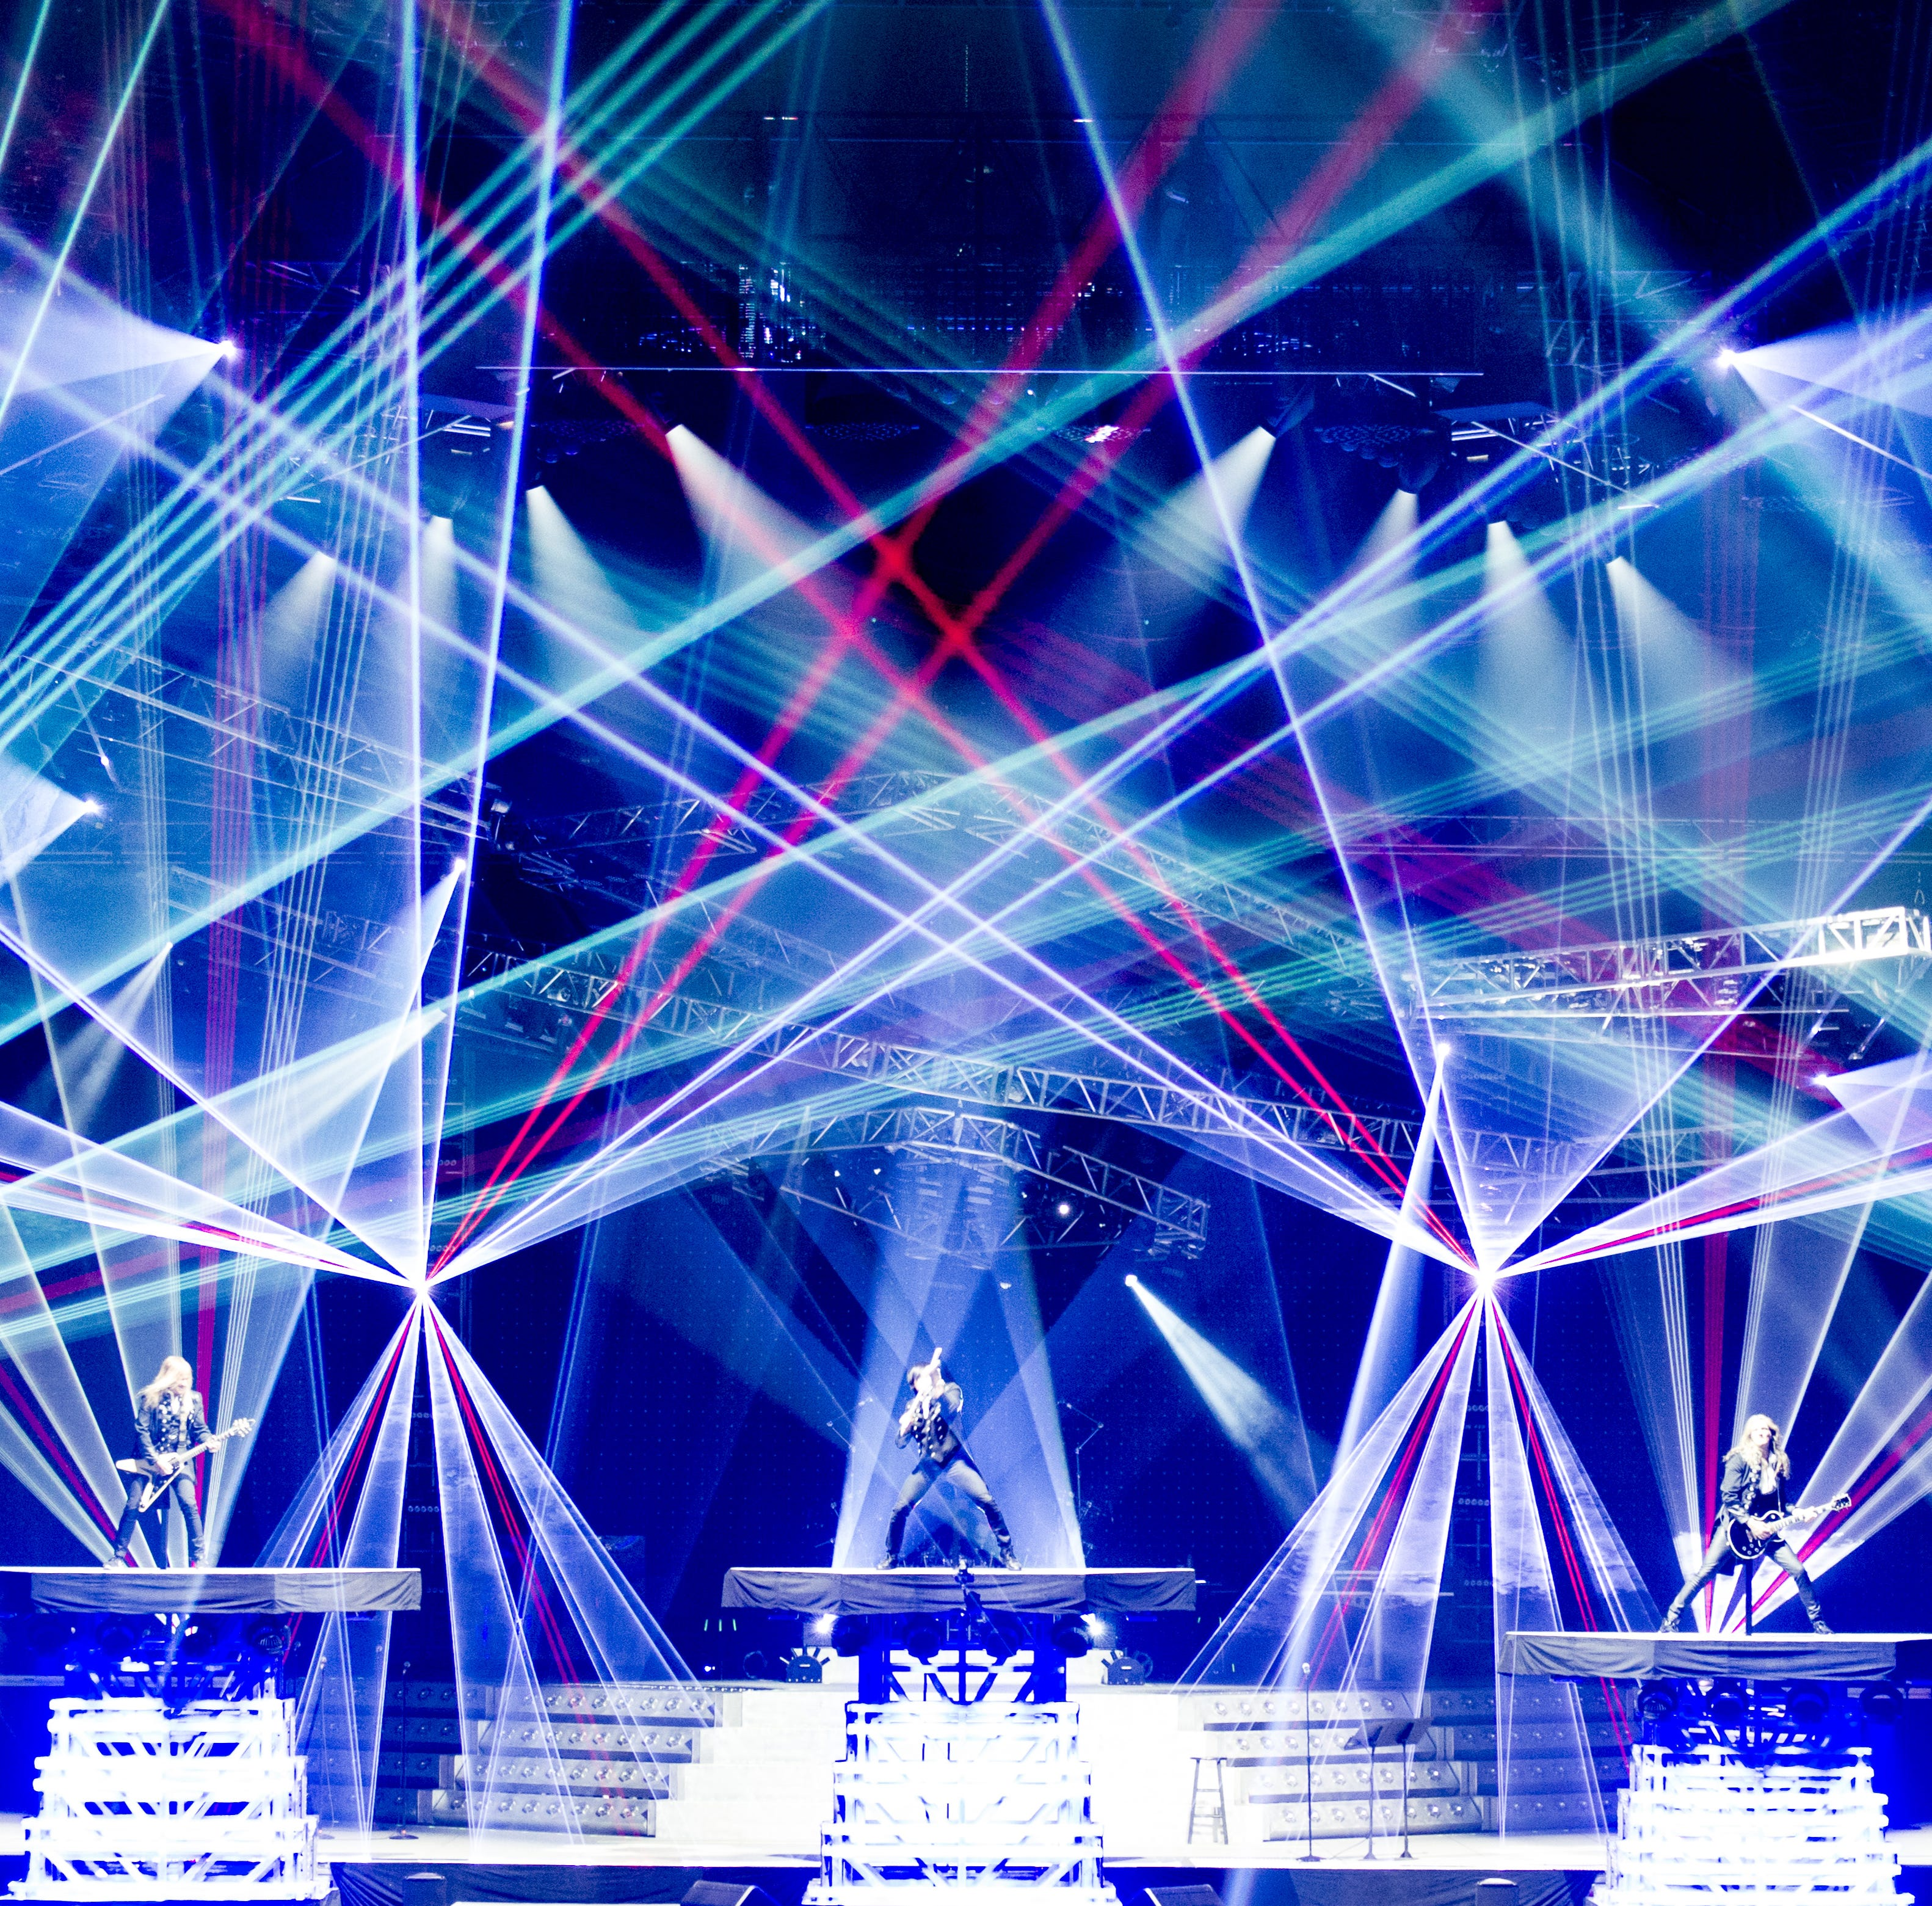 Trans-Siberian Orchestra to kick off 20th anniversary holiday tour with 2 shows at Resch